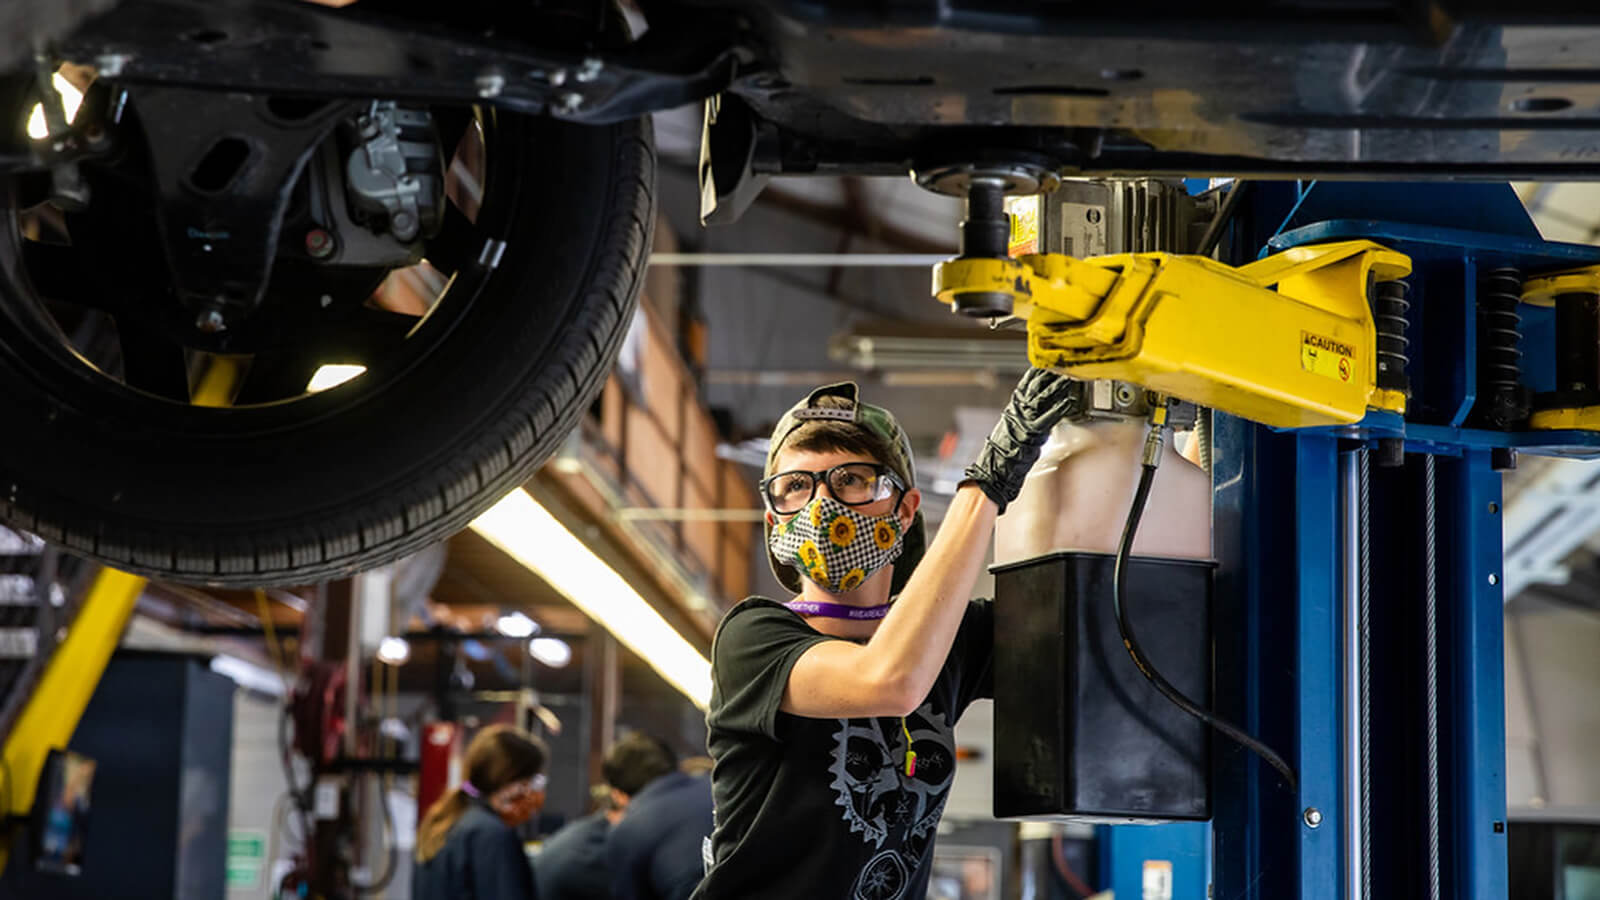 A student, wearing a mask, uses a car lift during an Automotive Technology class at the Riverside Campus.